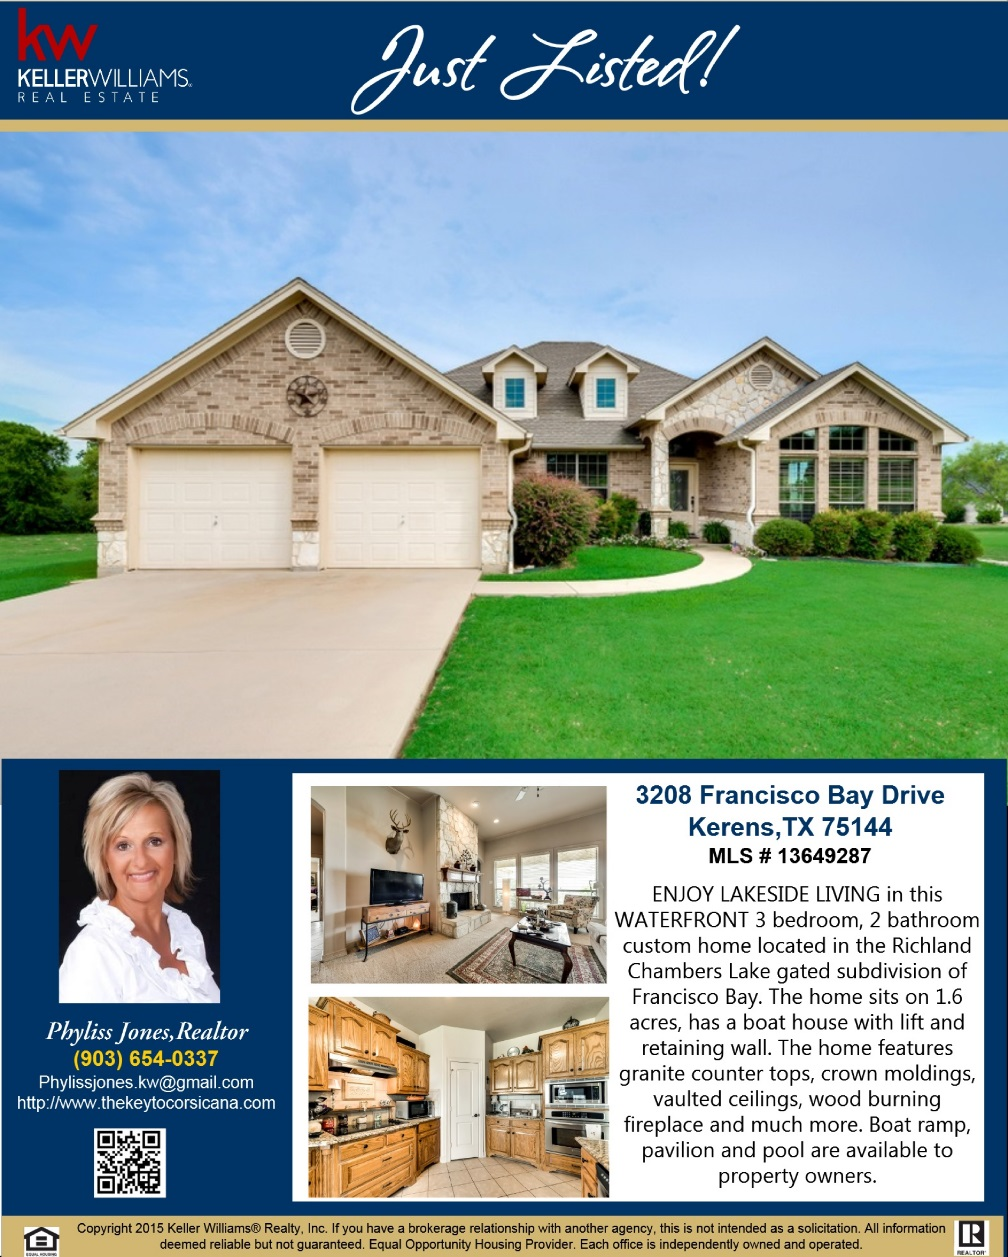 BEAUTIFUL WATERFRONT 3 bedroom, 2 bathroom custom home located in the Richland Chambers Lake gated subdivision of Francisco Bay. :) Please call me for more details Phyliss Jones, Realtor (903)654-0337.